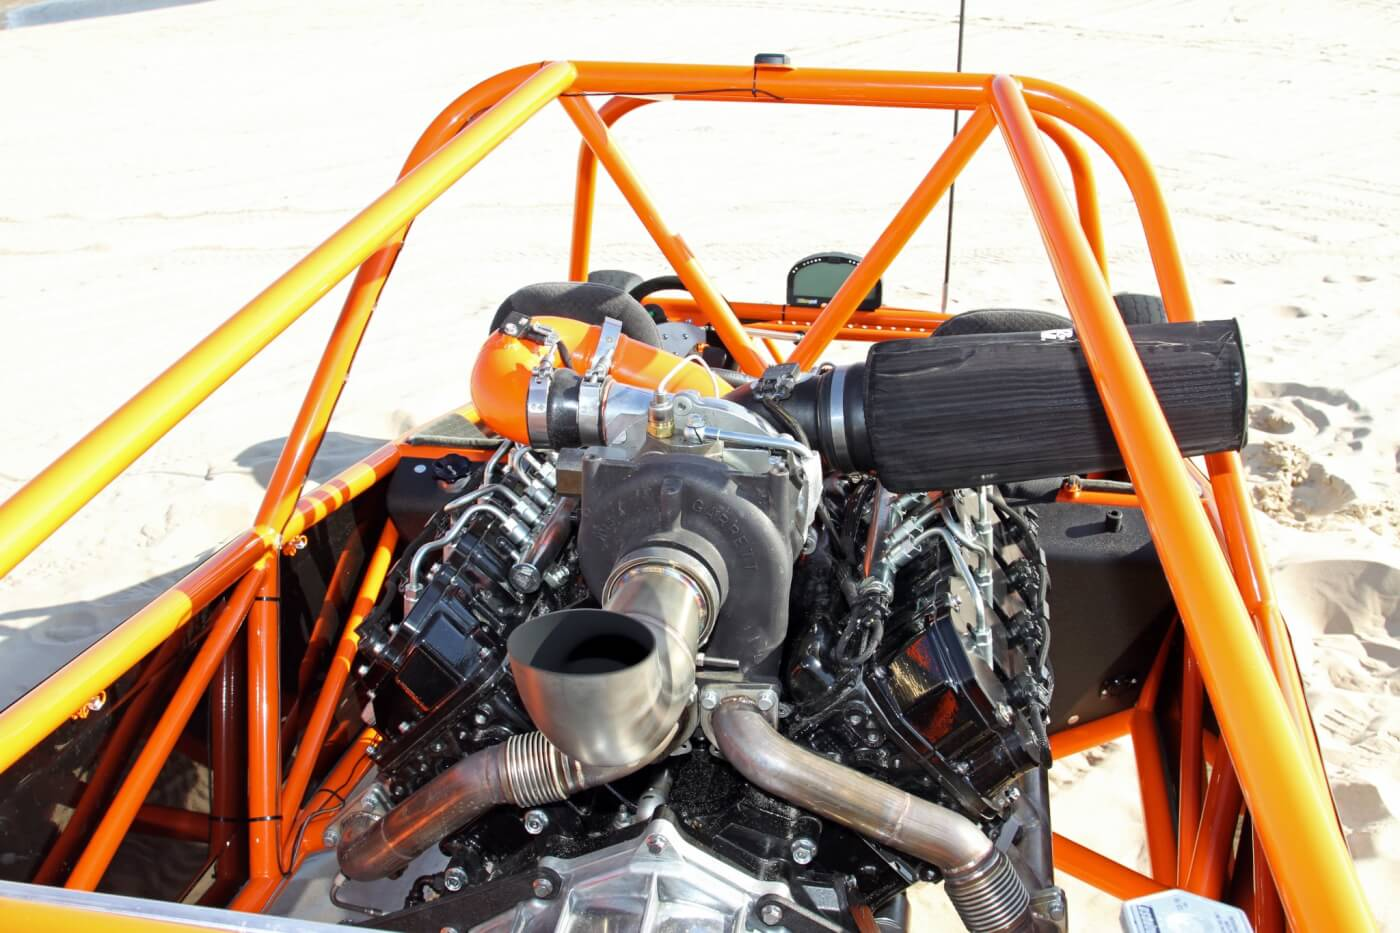 The heart of the beast is a potent LBZ Duramax engine that was warmed over by the Merchant Automotive crew to give the buggy plenty of power.